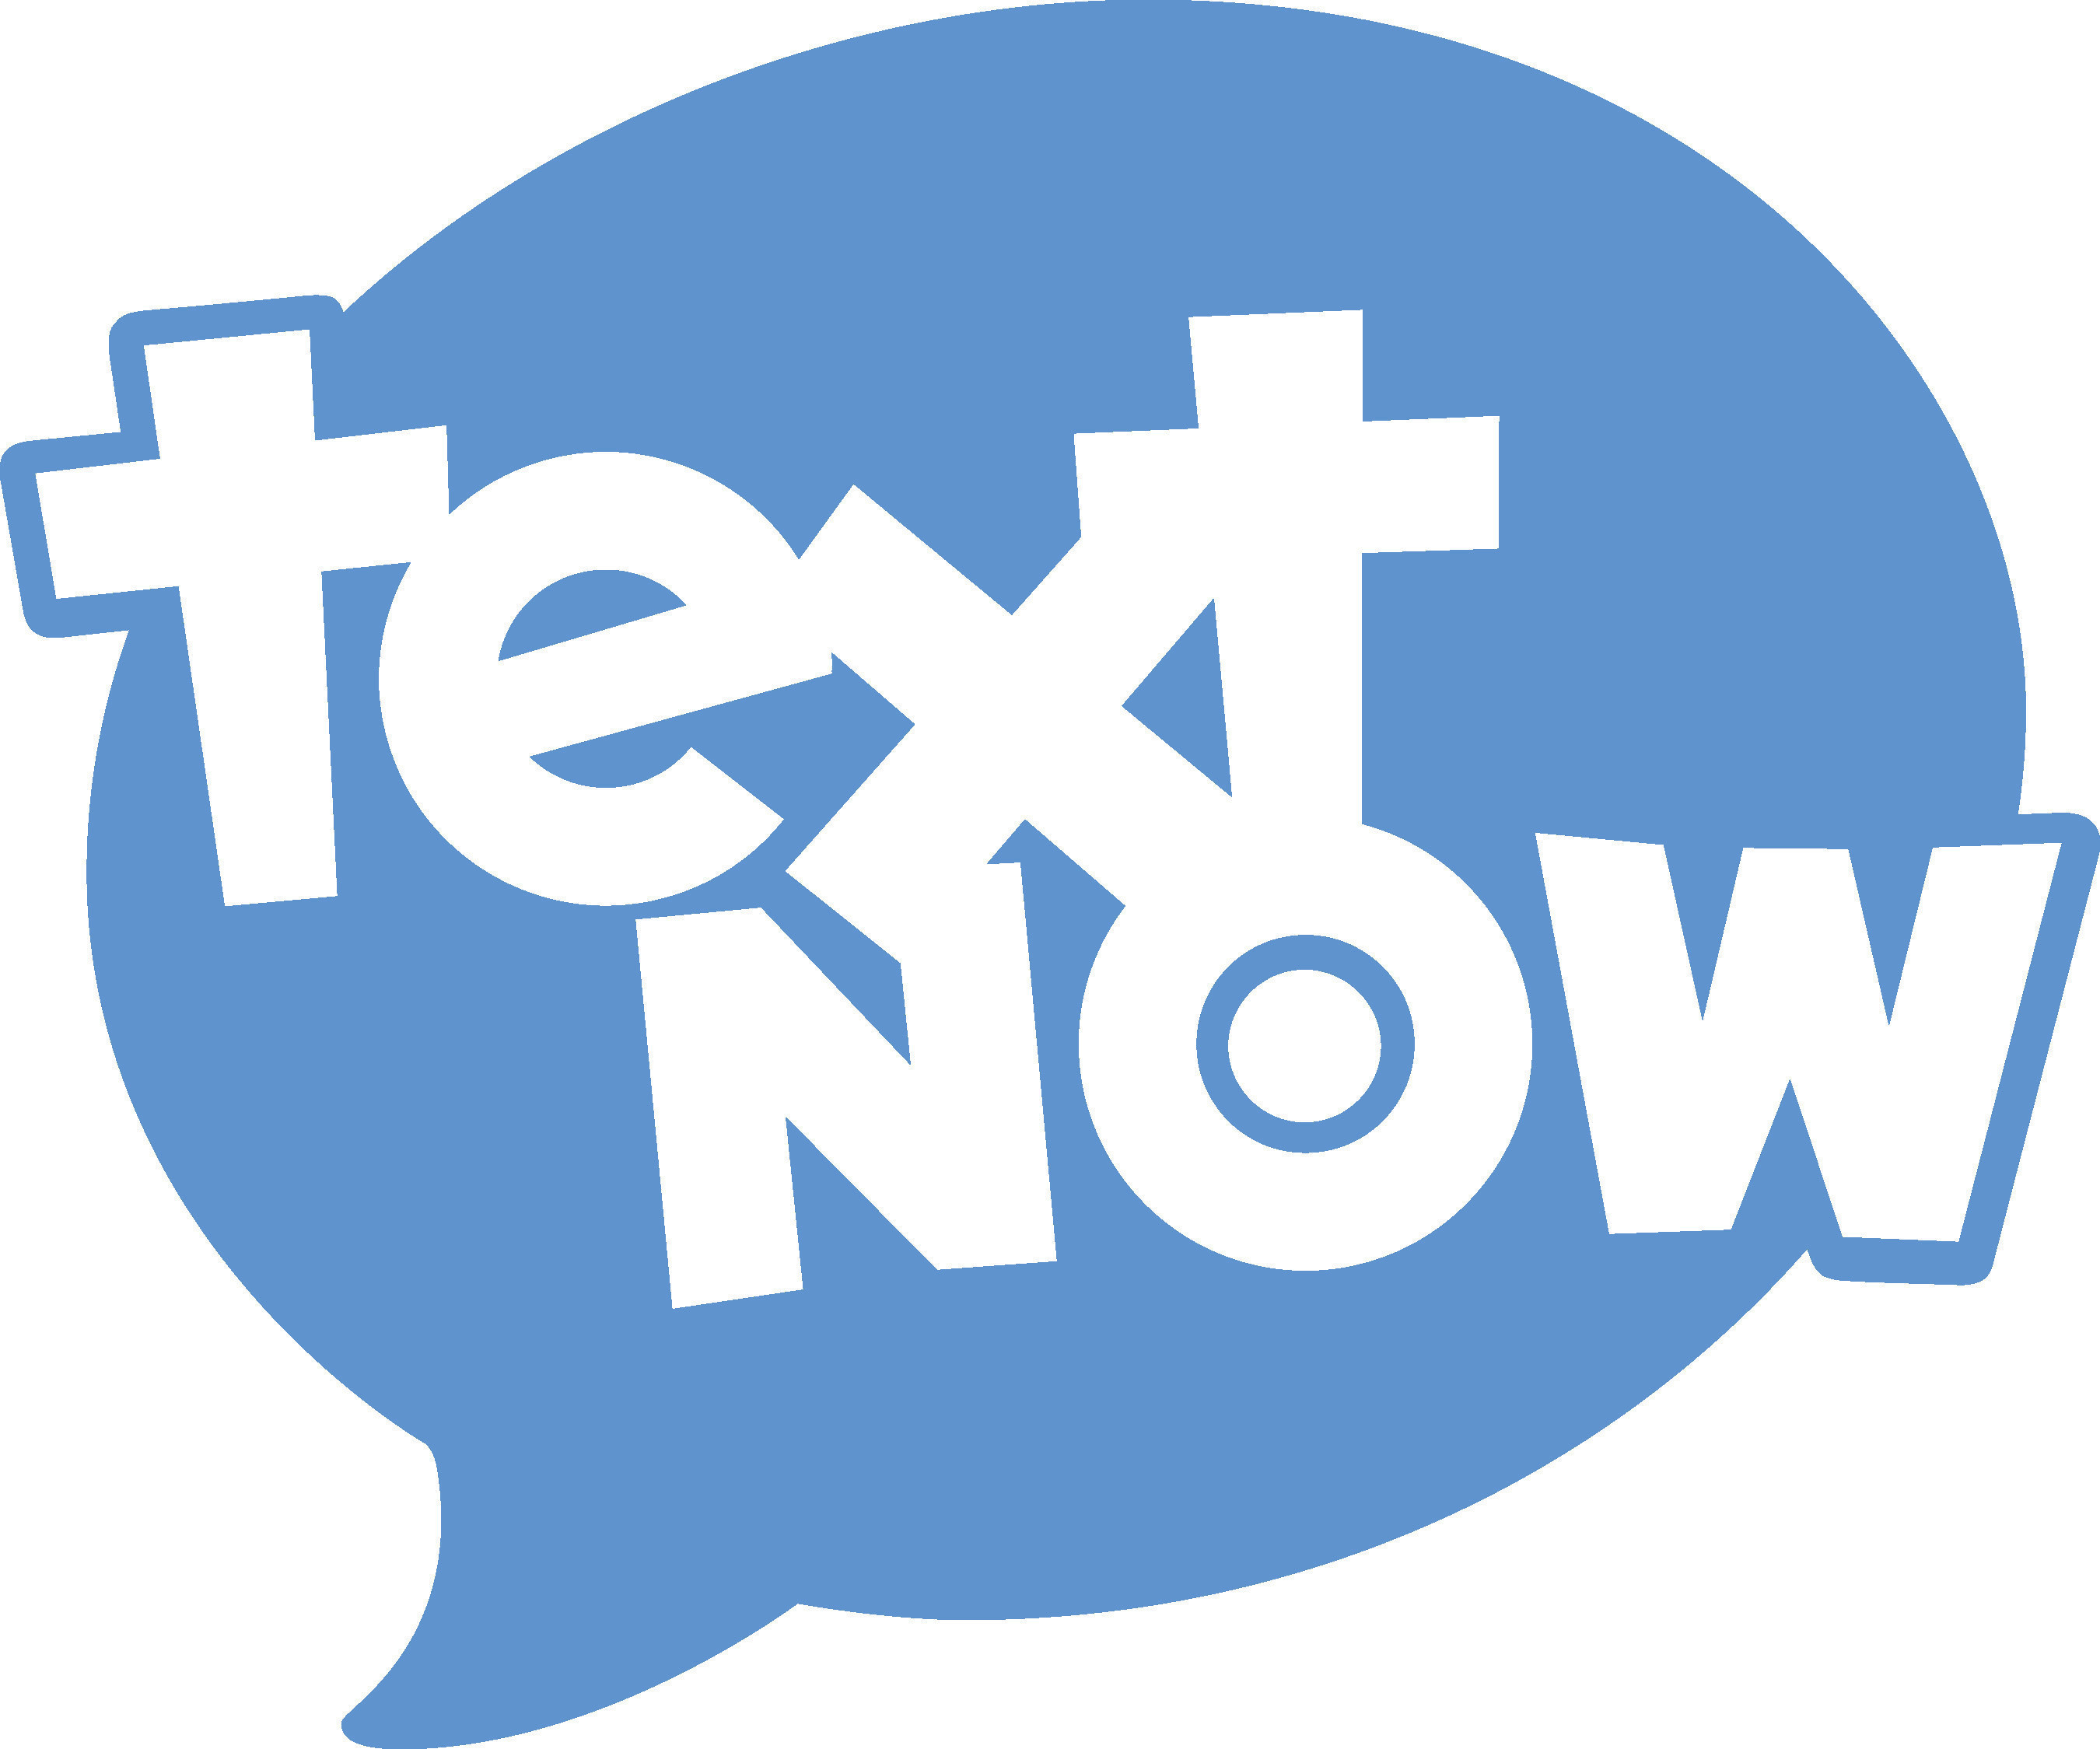 TextNow Announces Global Expansion, Adds International Calling To More Than 150 Countries Including